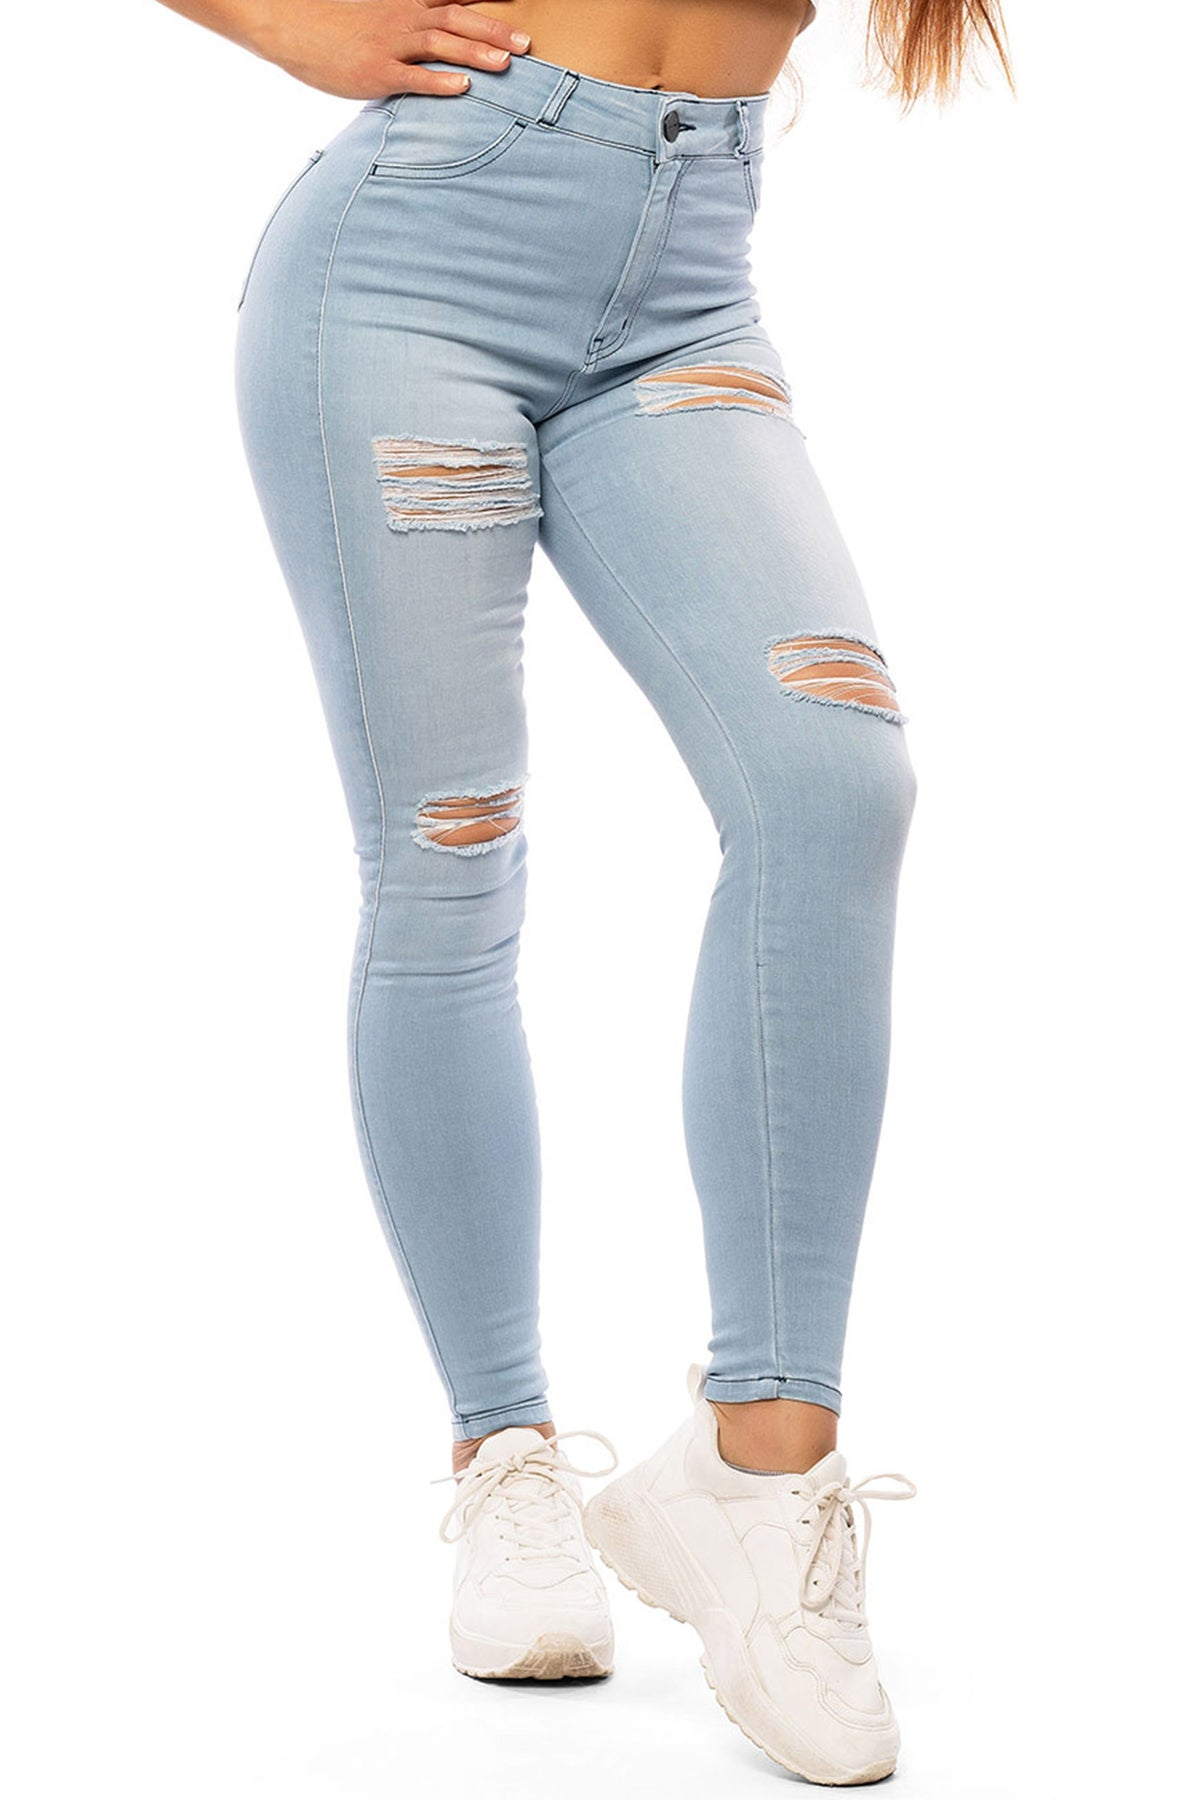 Womens Regular 4 Hole Ripped High Waisted Fitjeans - Bleach Blue